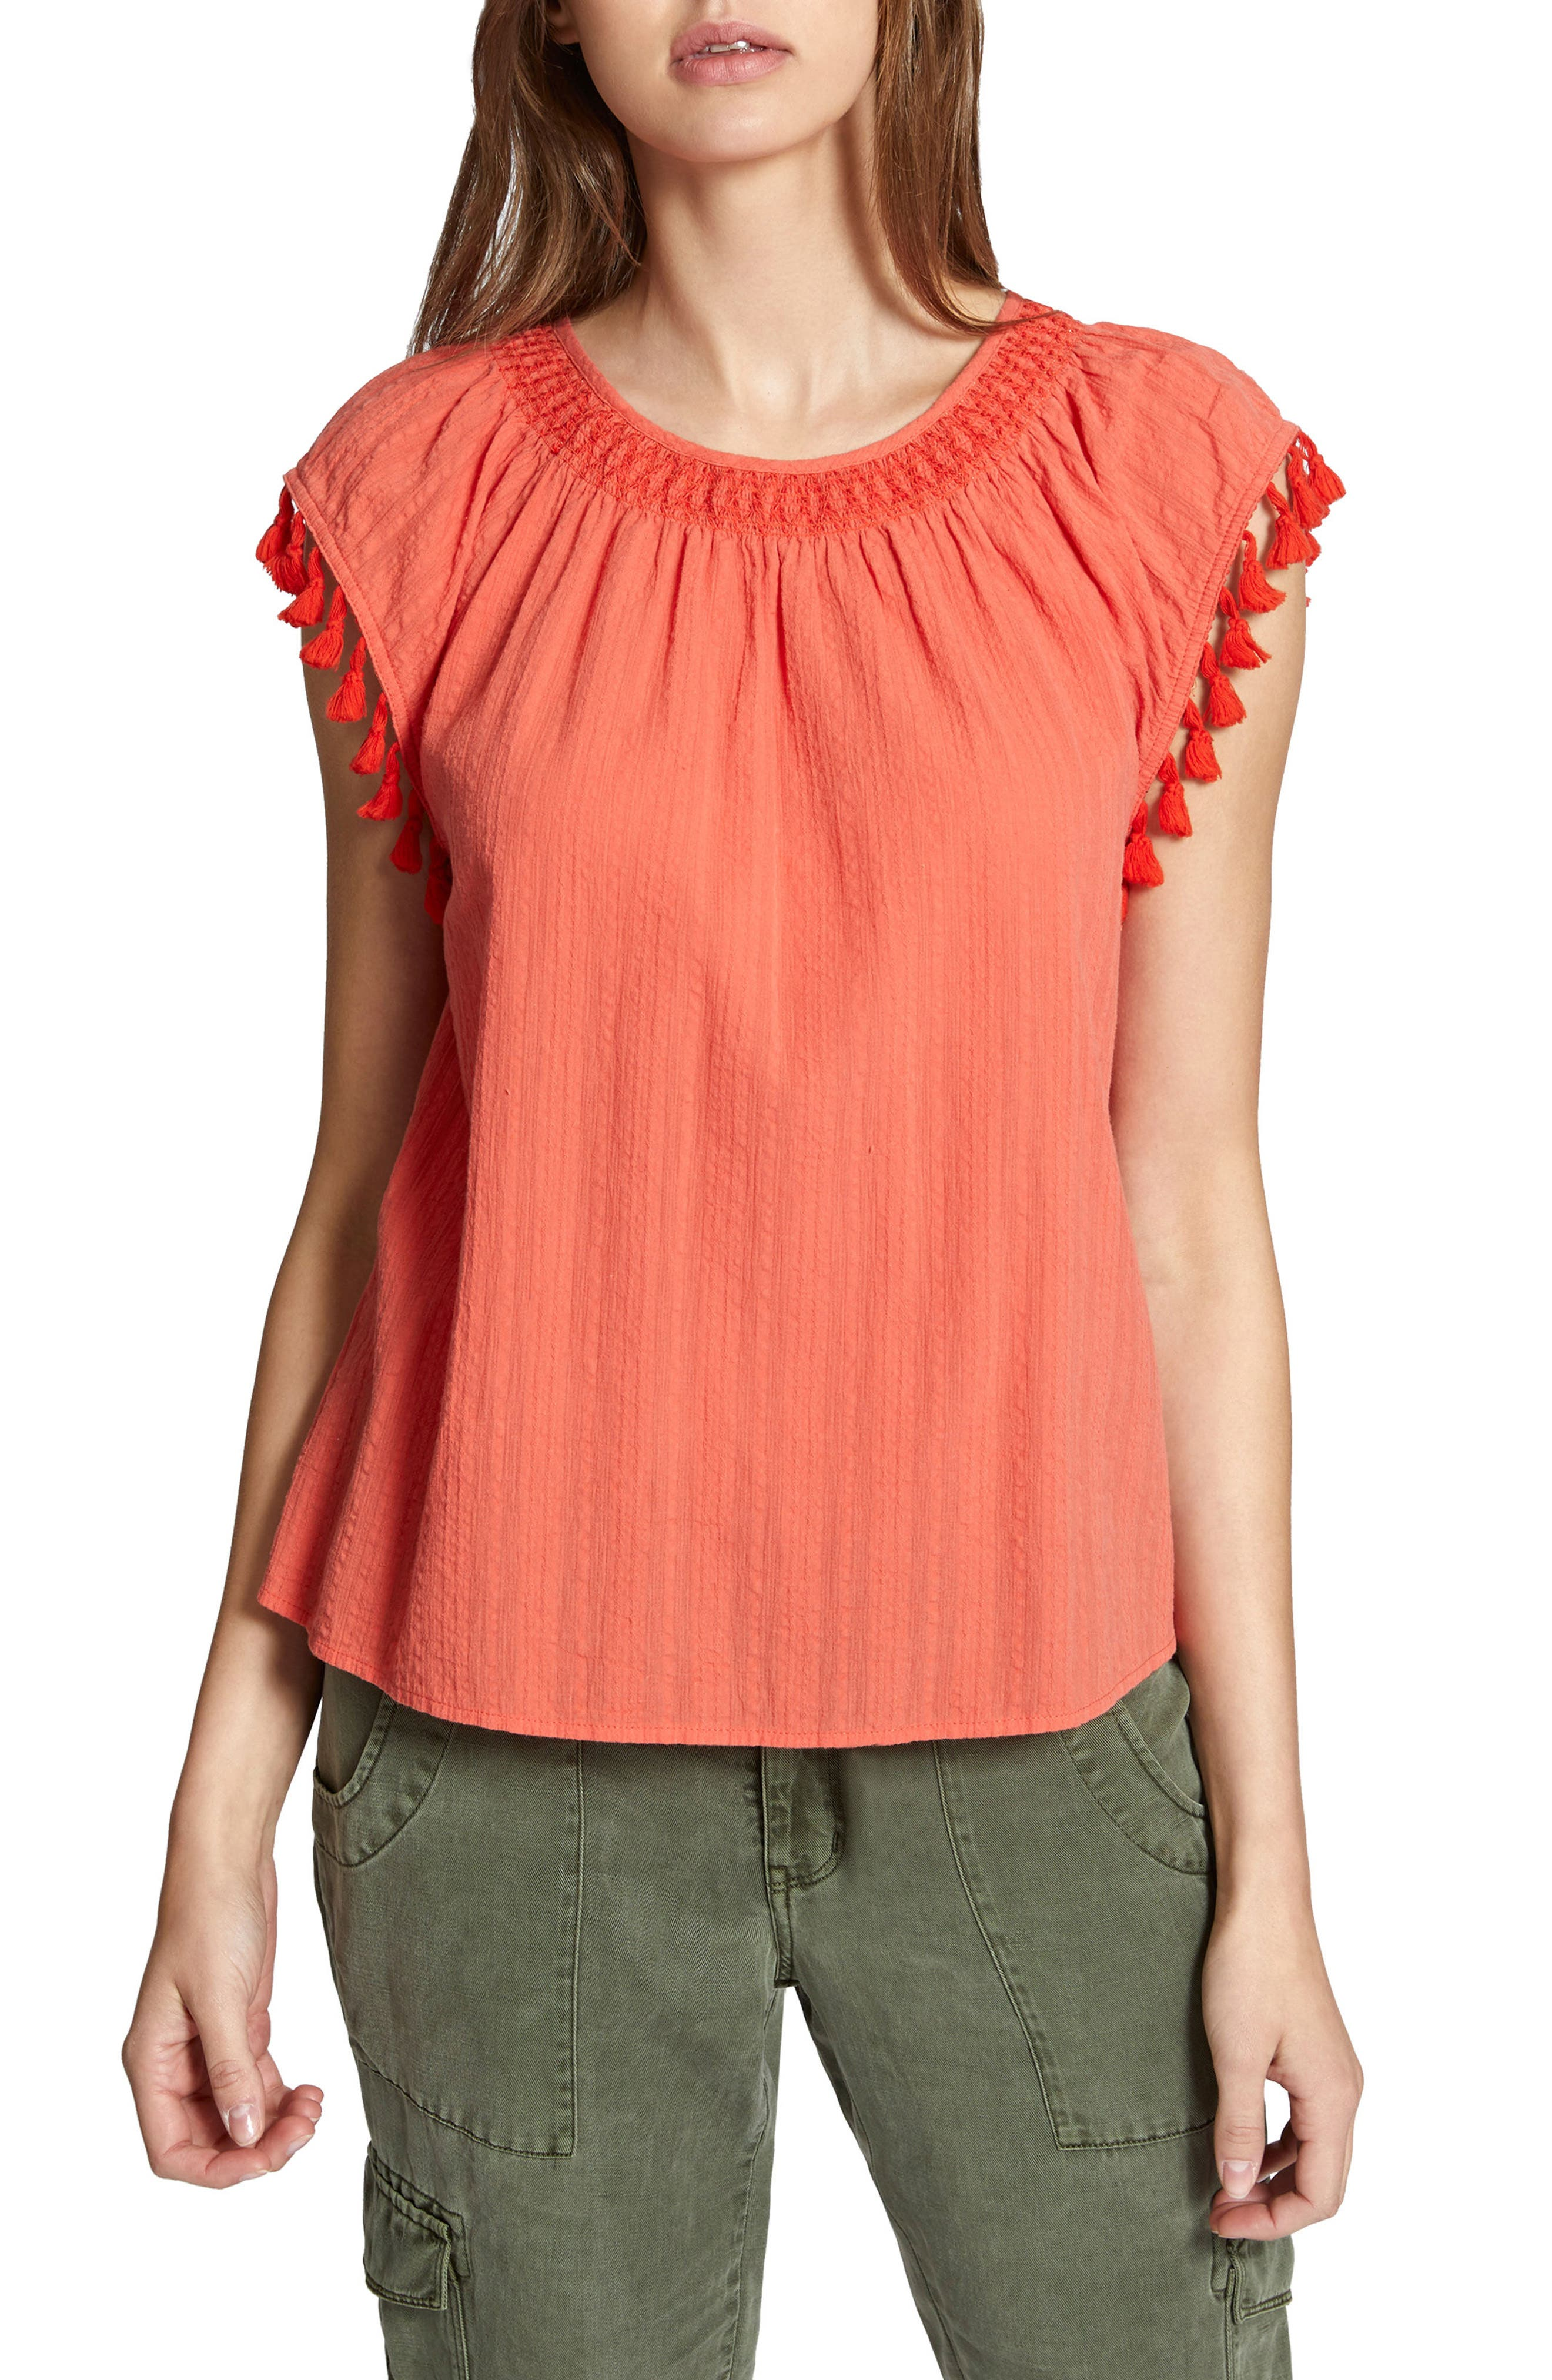 Gobi Tassel Top,                         Main,                         color, Chili